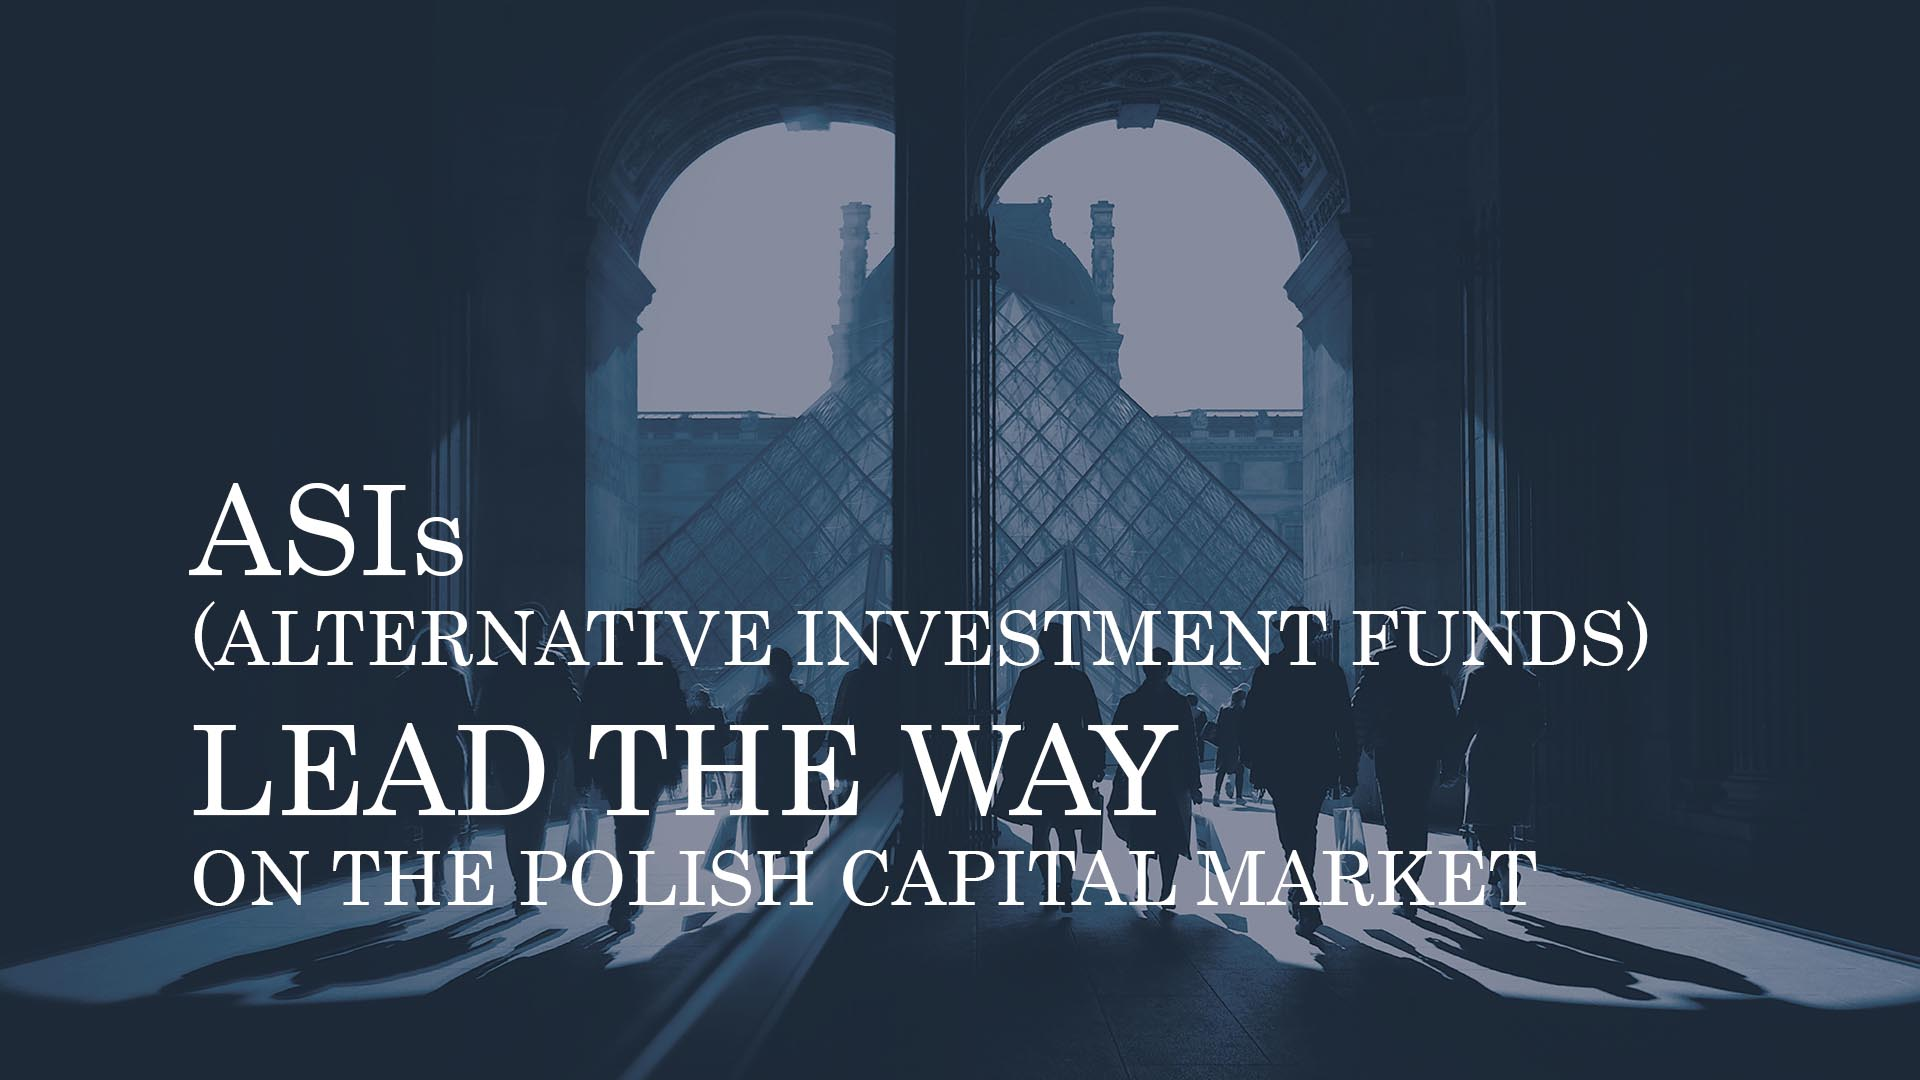 ASIs (ALTERNATIVE INVESTMENT FUNDS) LEAD THE WAY ON THE POLISH CAPITAL MARKET